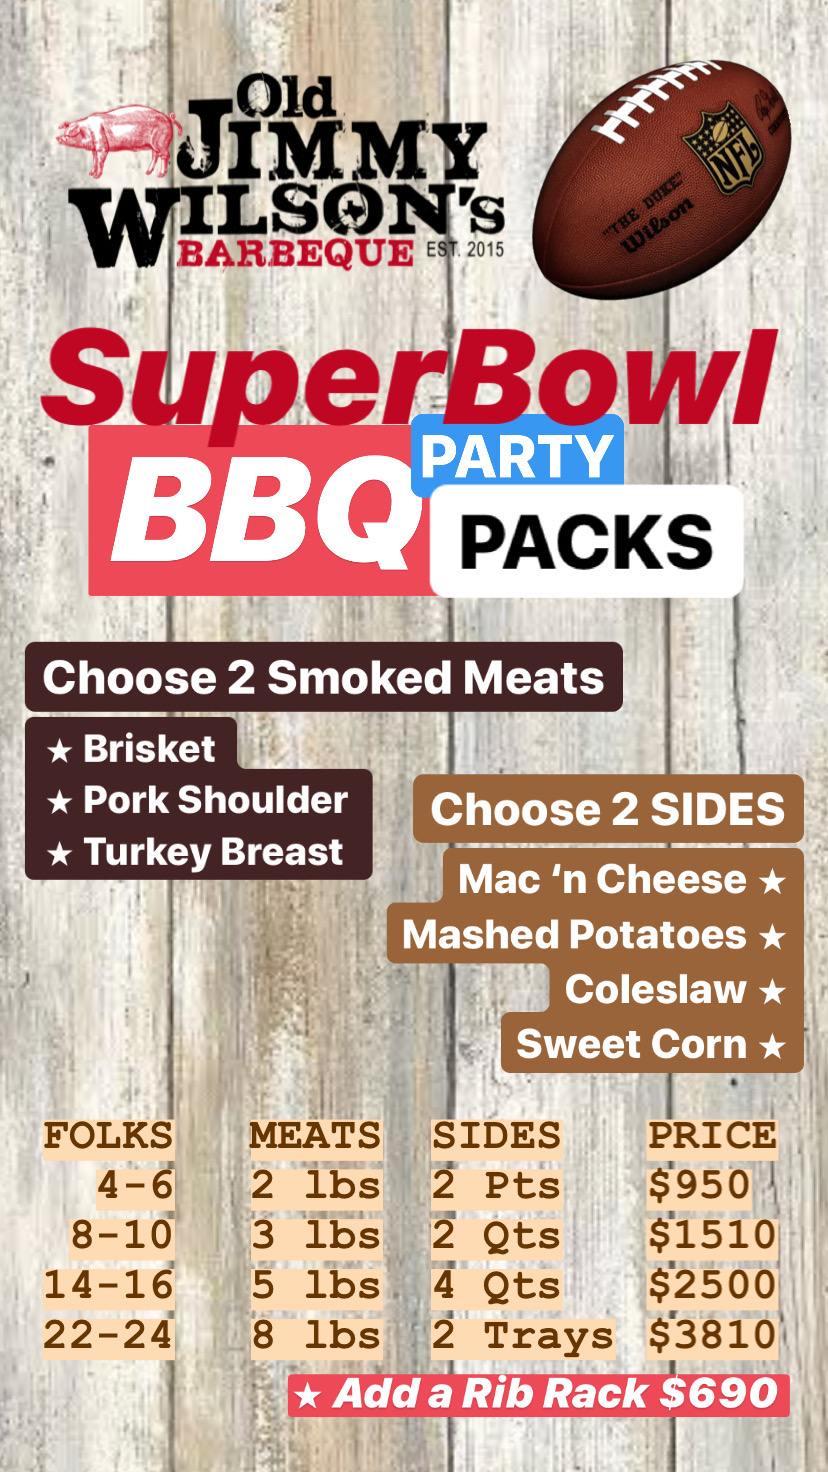 BBQ party packs